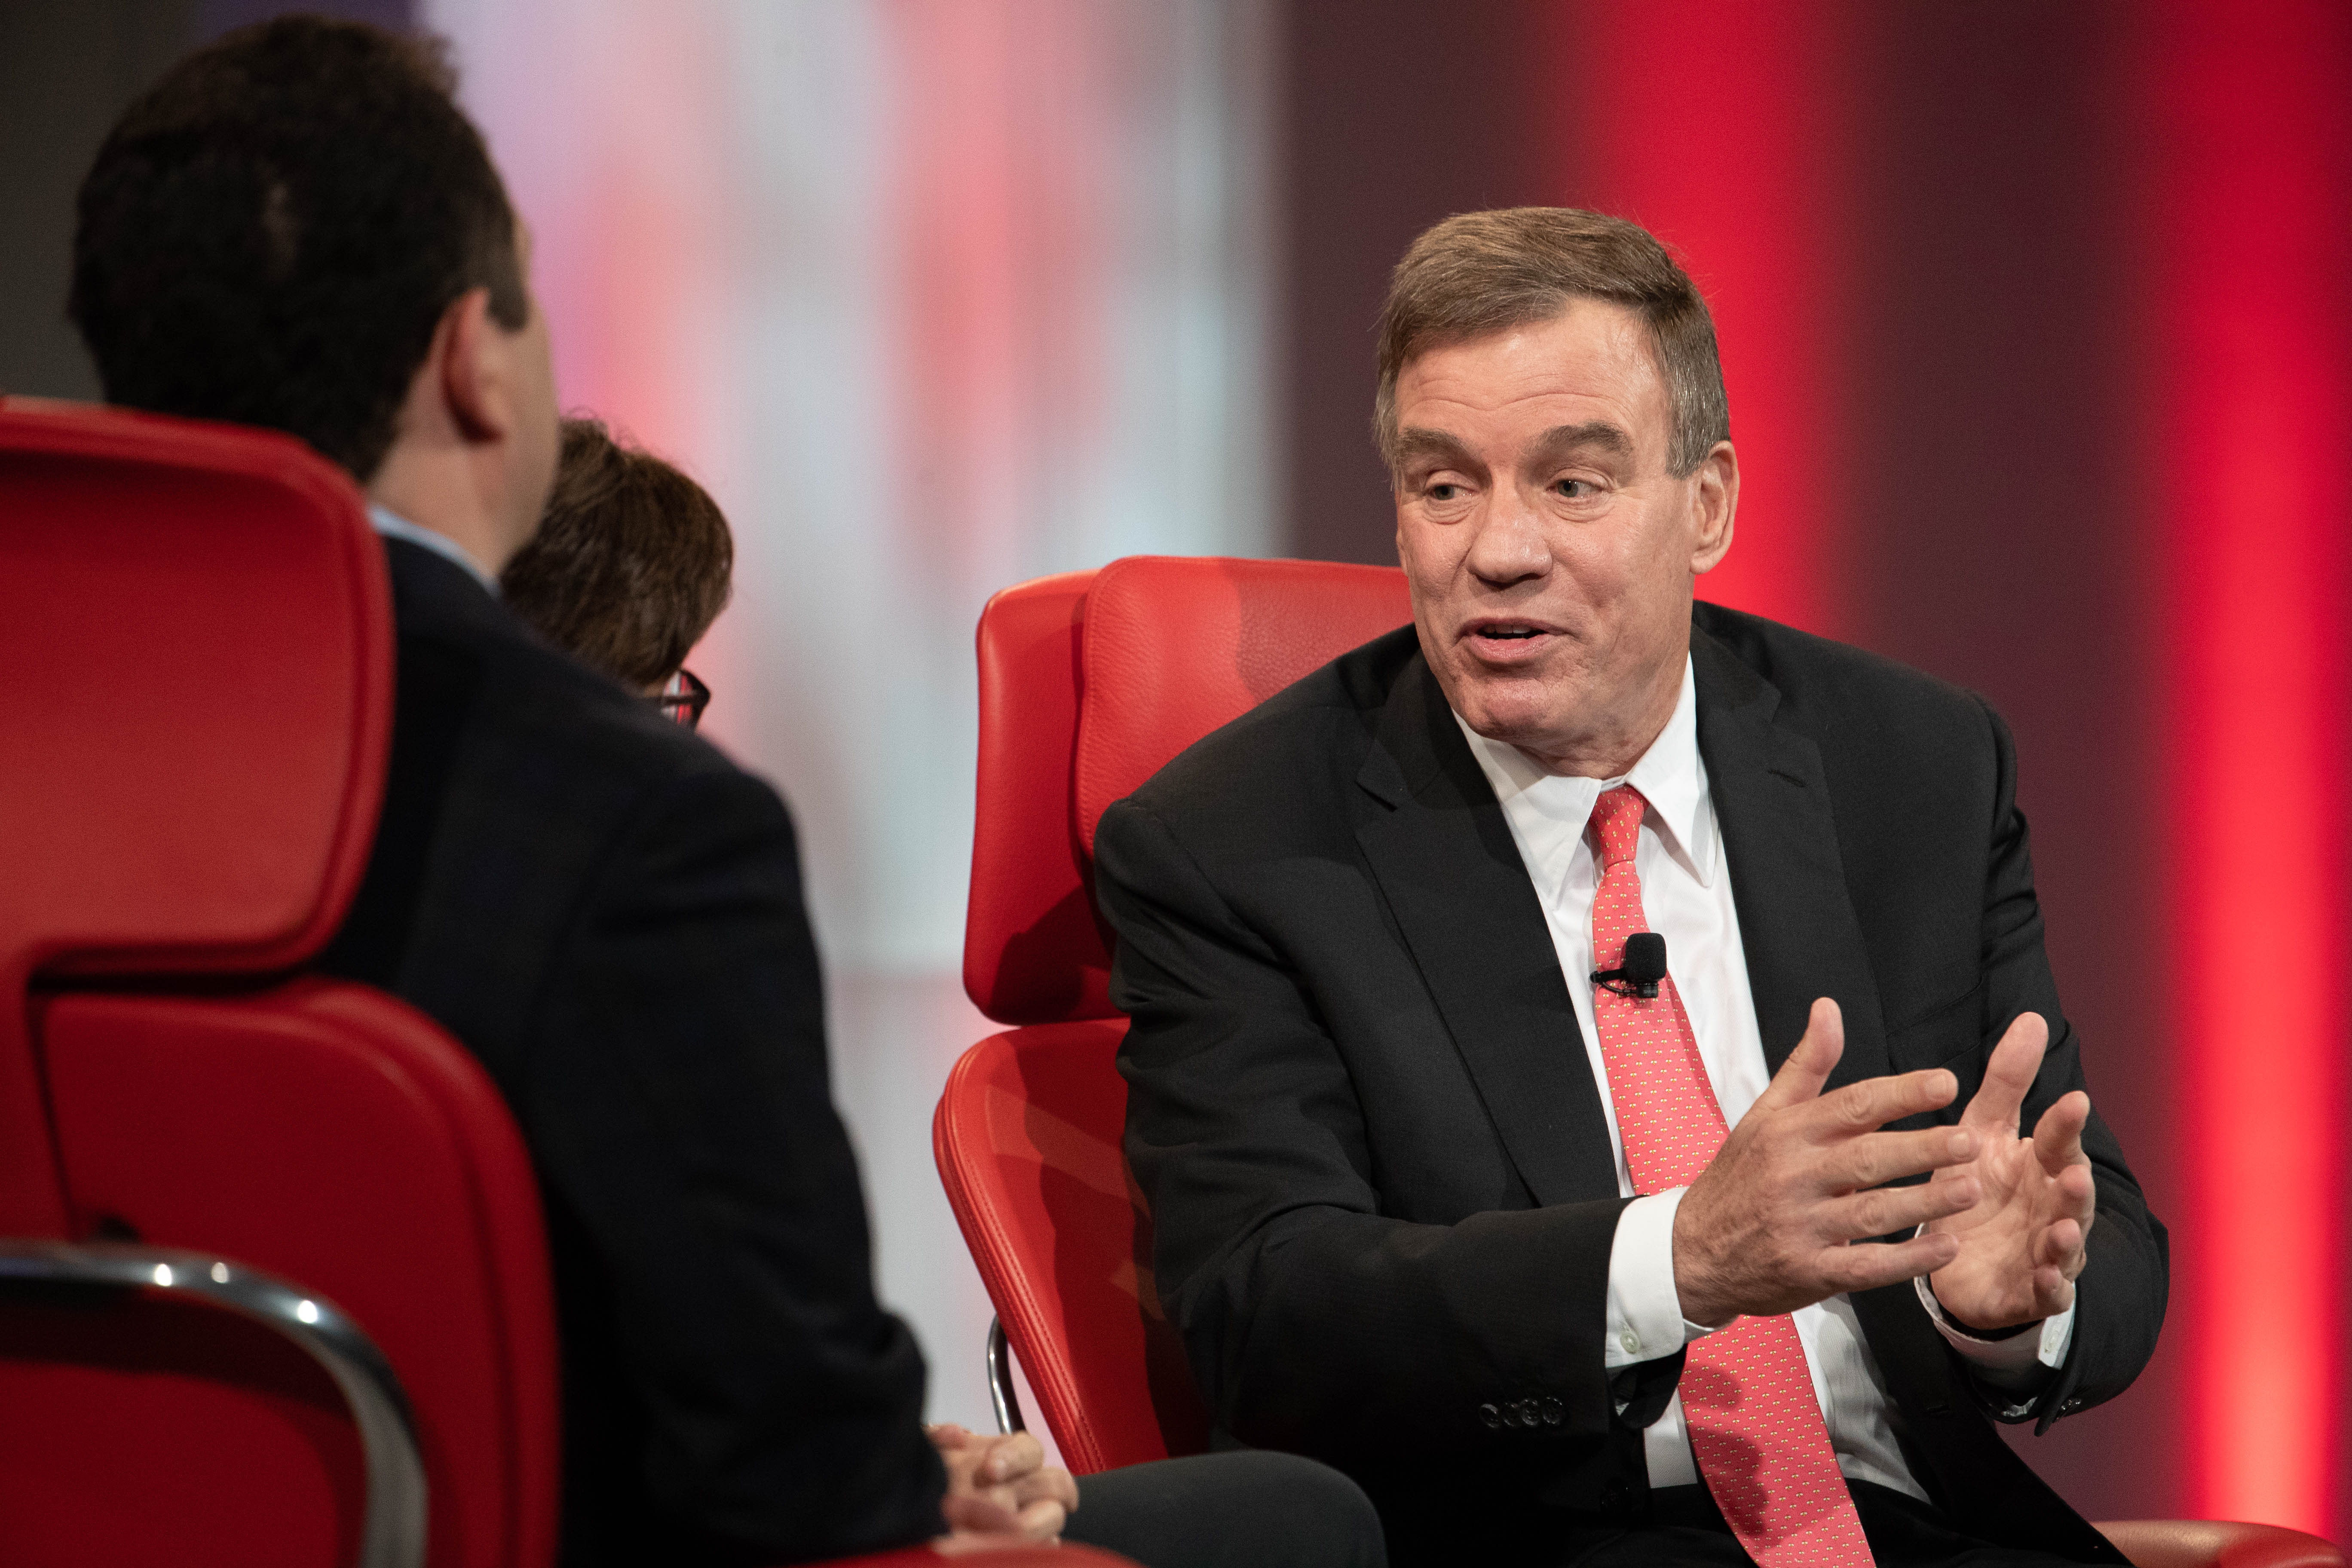 US Senator Mark Warner speaking onstage while seated in a red chair.